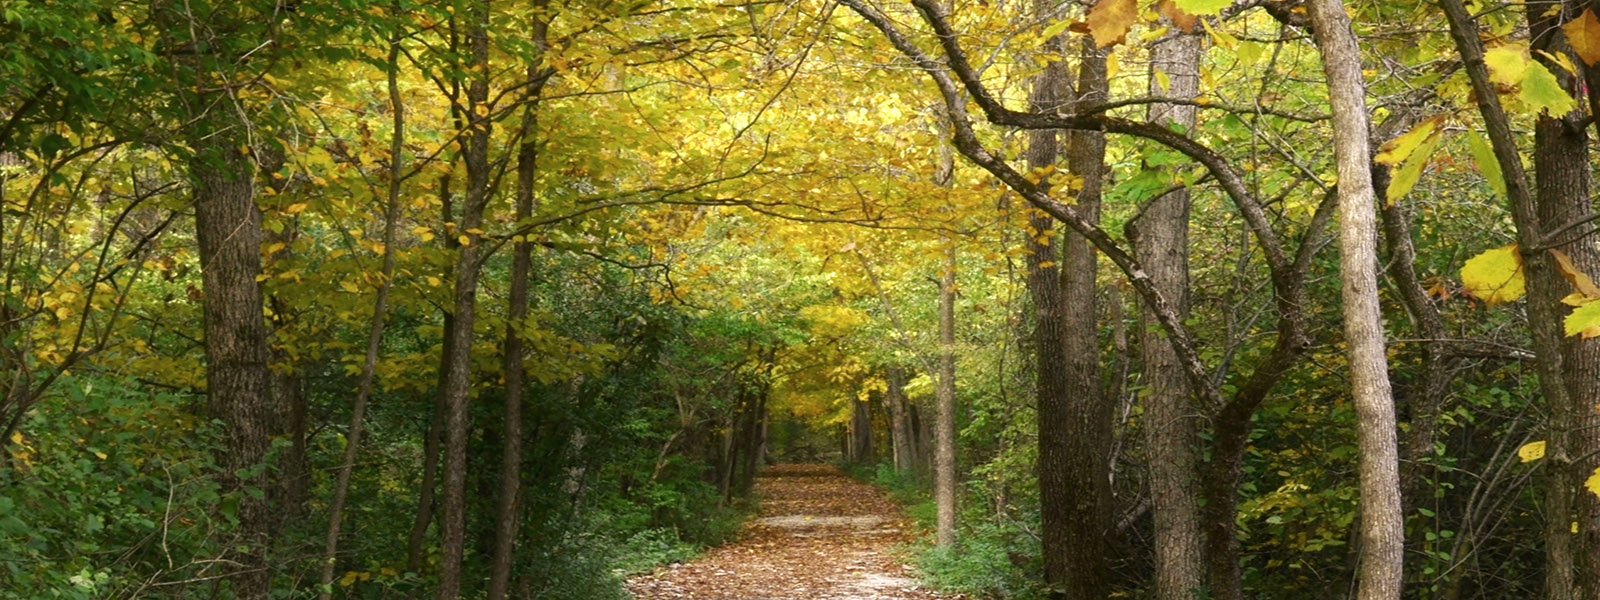 The Ohio Environmental Council Action Fund Endorses The Wood